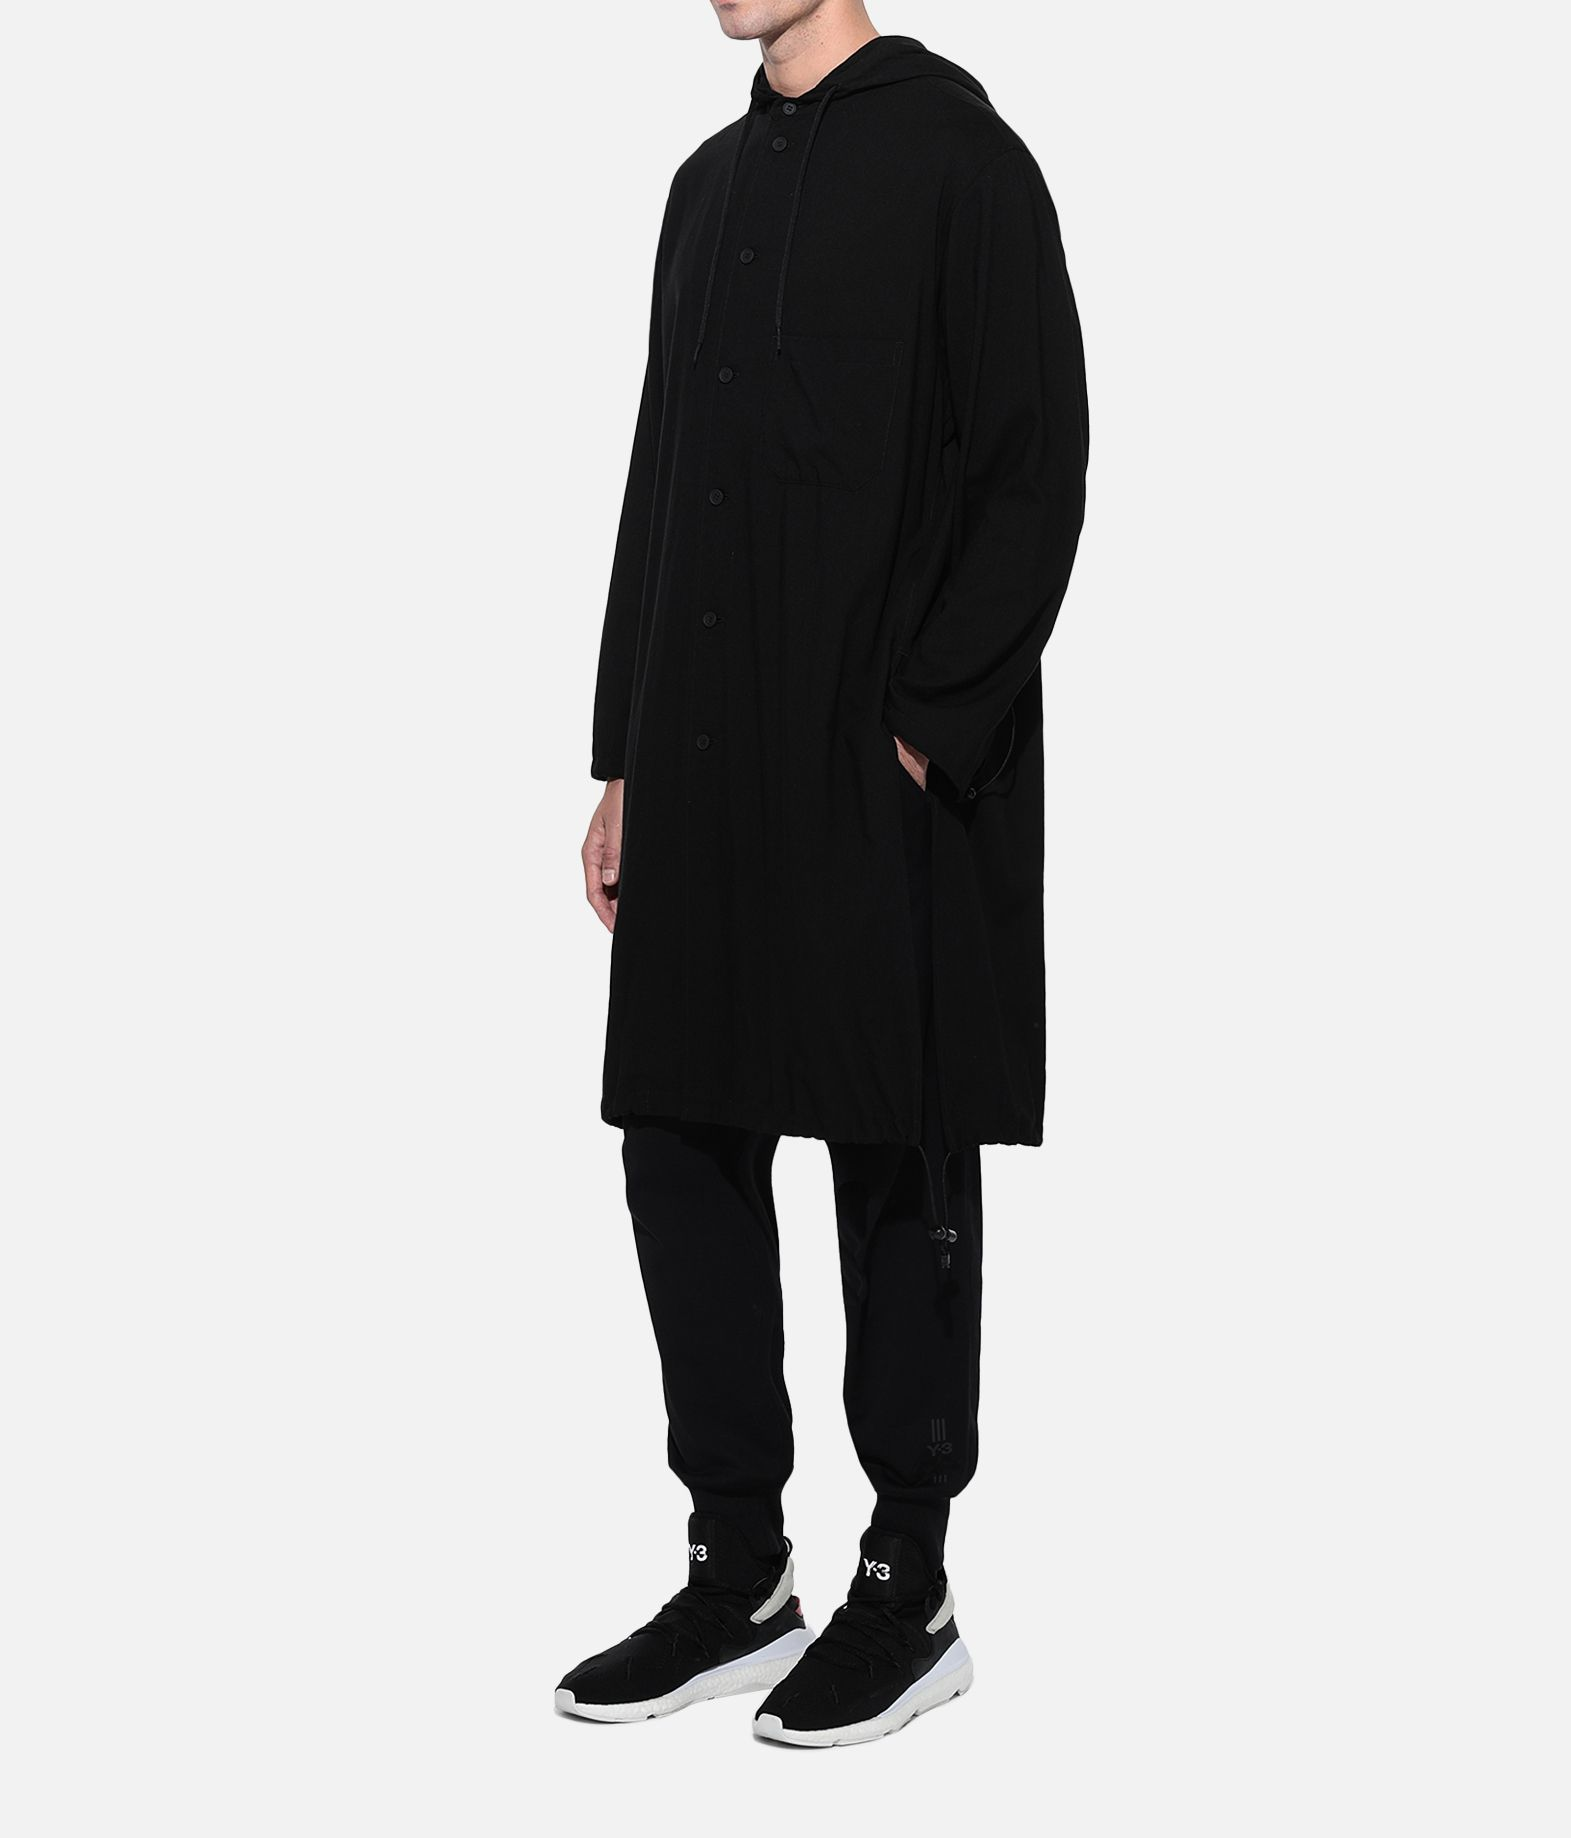 Y-3 Y-3 Hooded Long Shirt Long sleeve shirt Man e